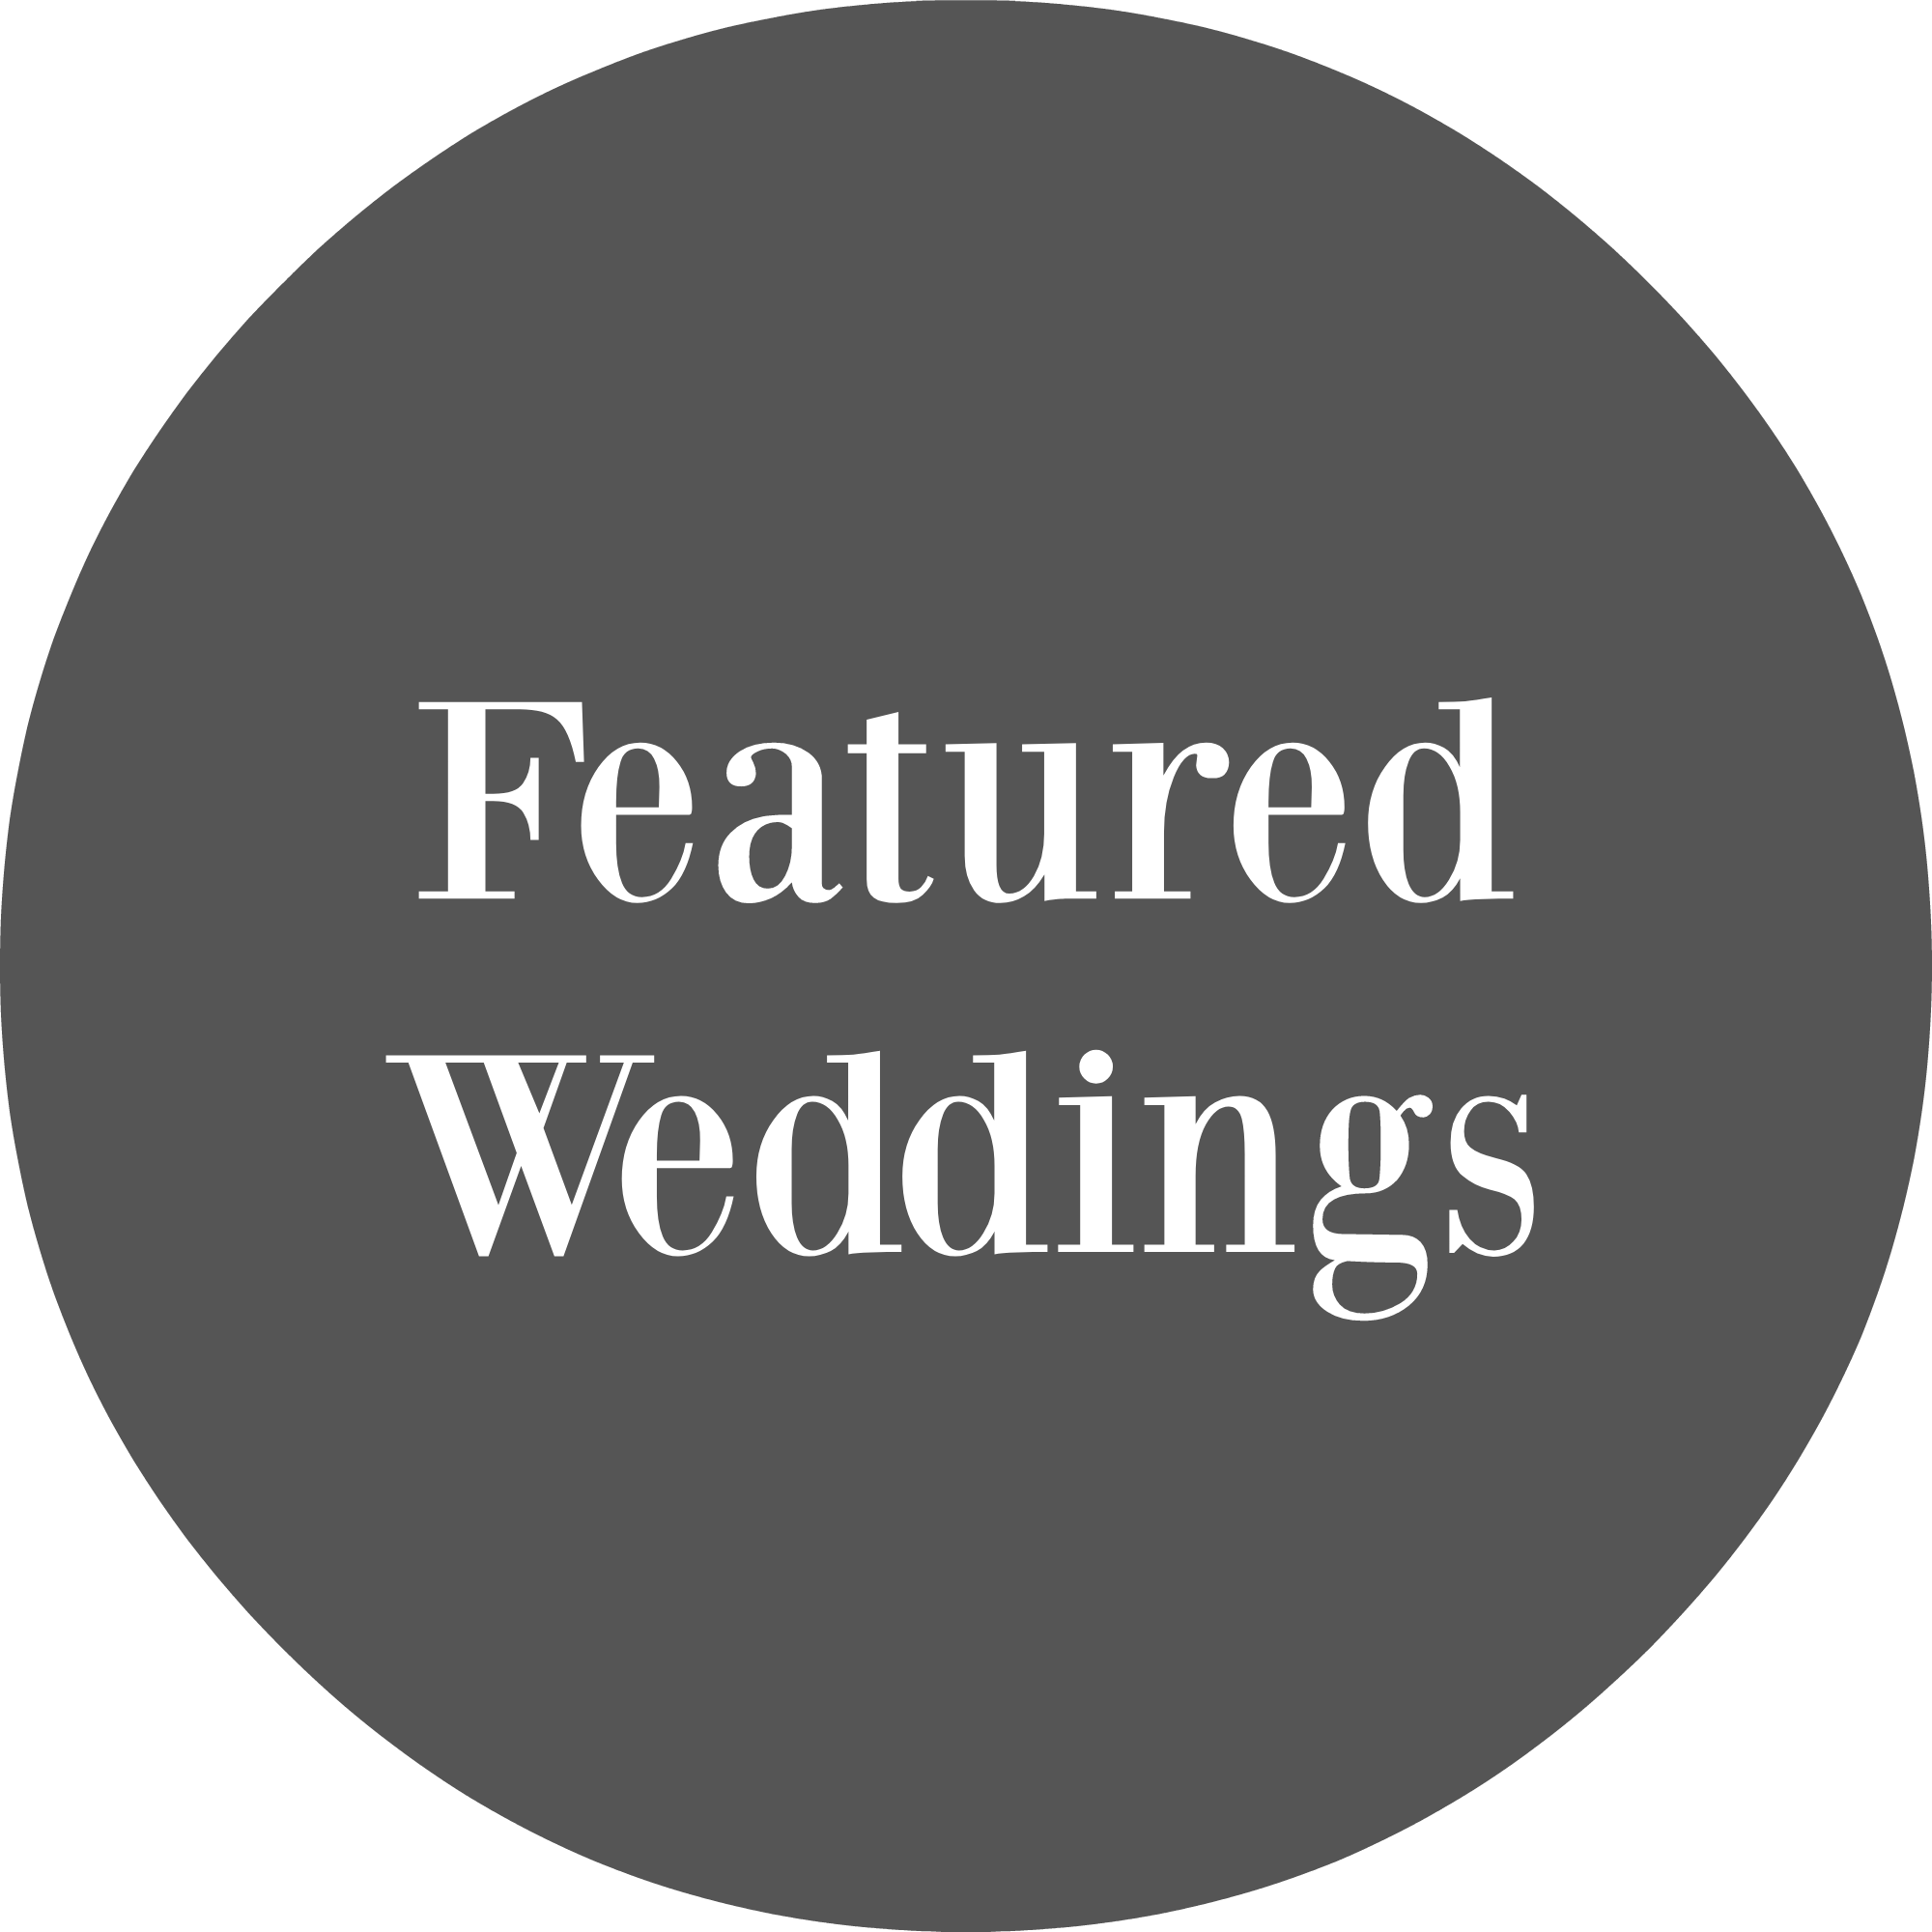 Featured Weddings.png